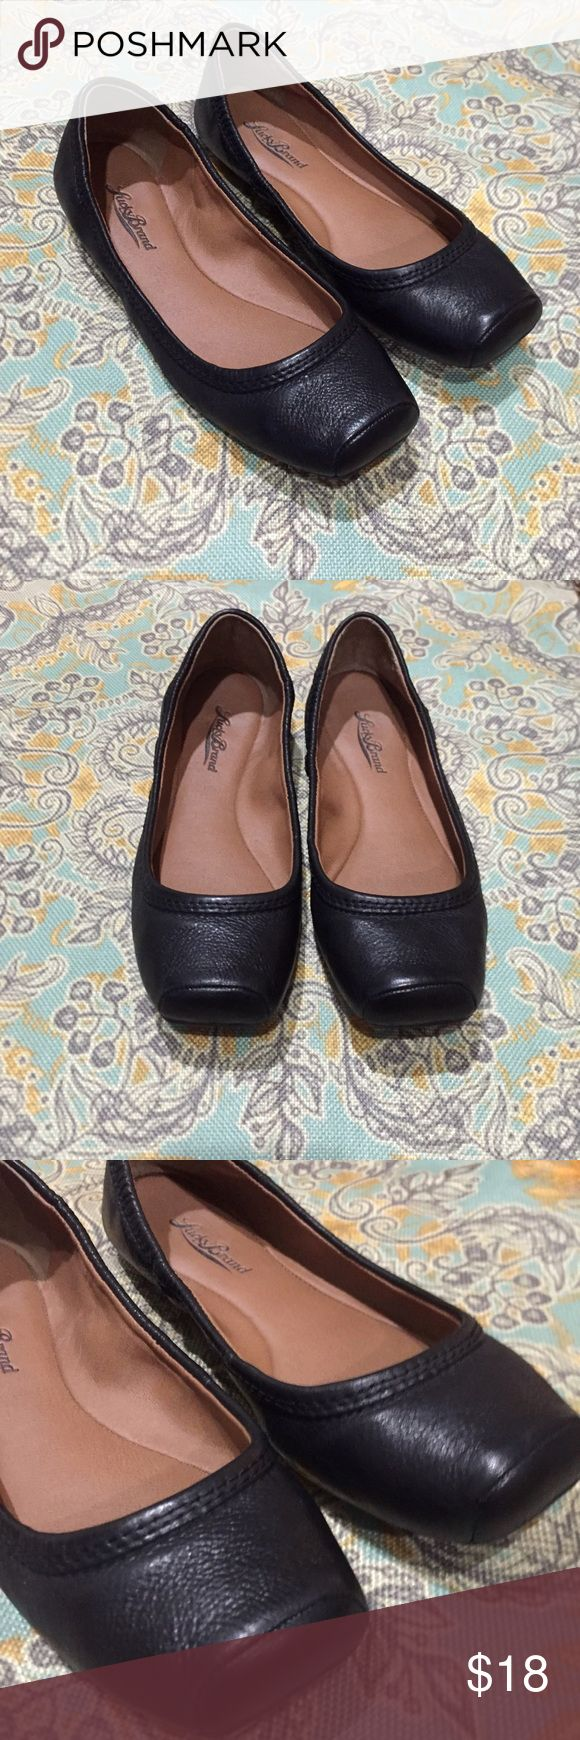 Lucky Brand Flats Lucky Brand square toe ballet flats. Black leather upper. Only worn a couple times- in great condition. Lucky Brand Shoes Flats & Loafers